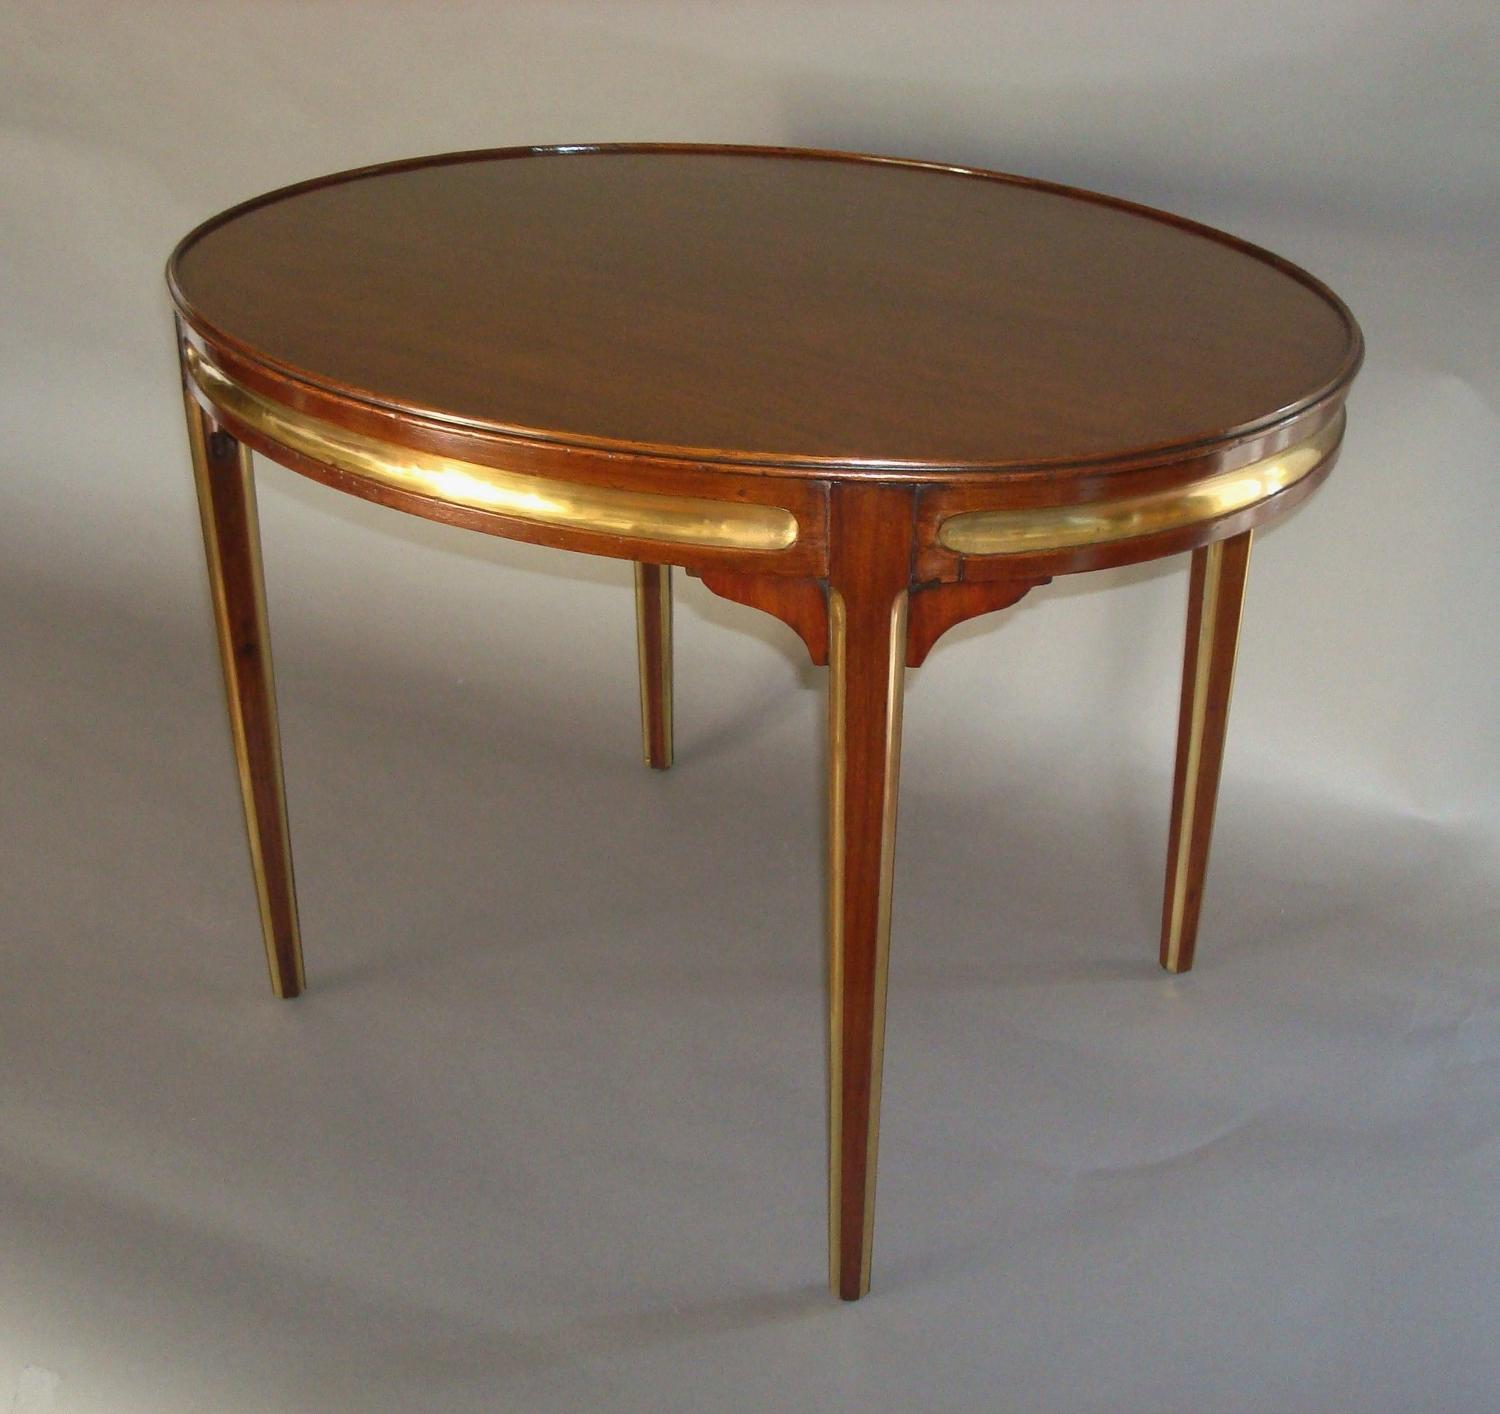 20th century oval low occasional table